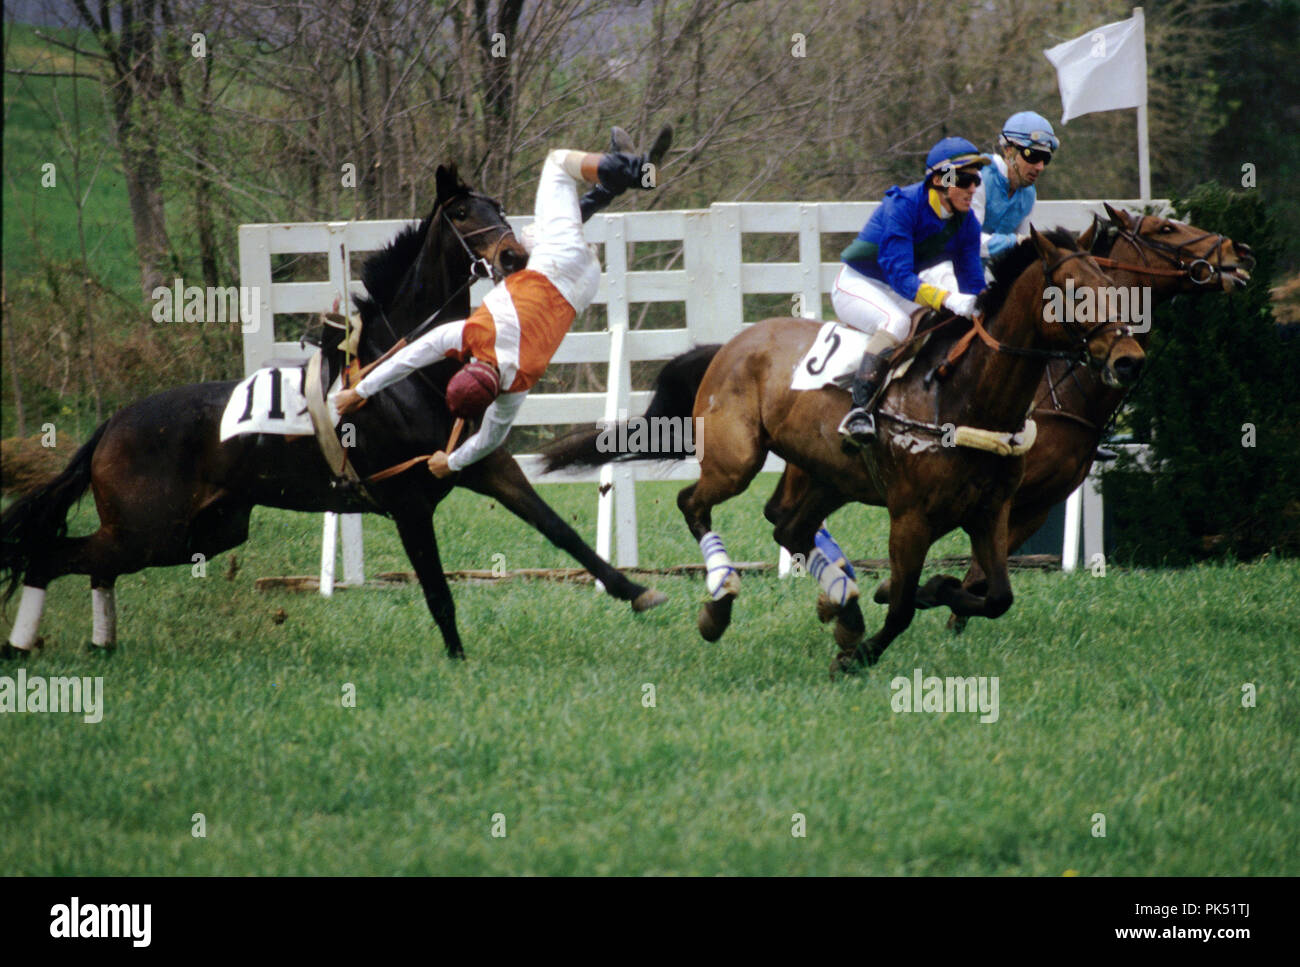 Jerry Gilman takes a huge fall during a timber race at the Oatlands Spring Point to Point, in Loudoun County, Virginia. Stock Photo